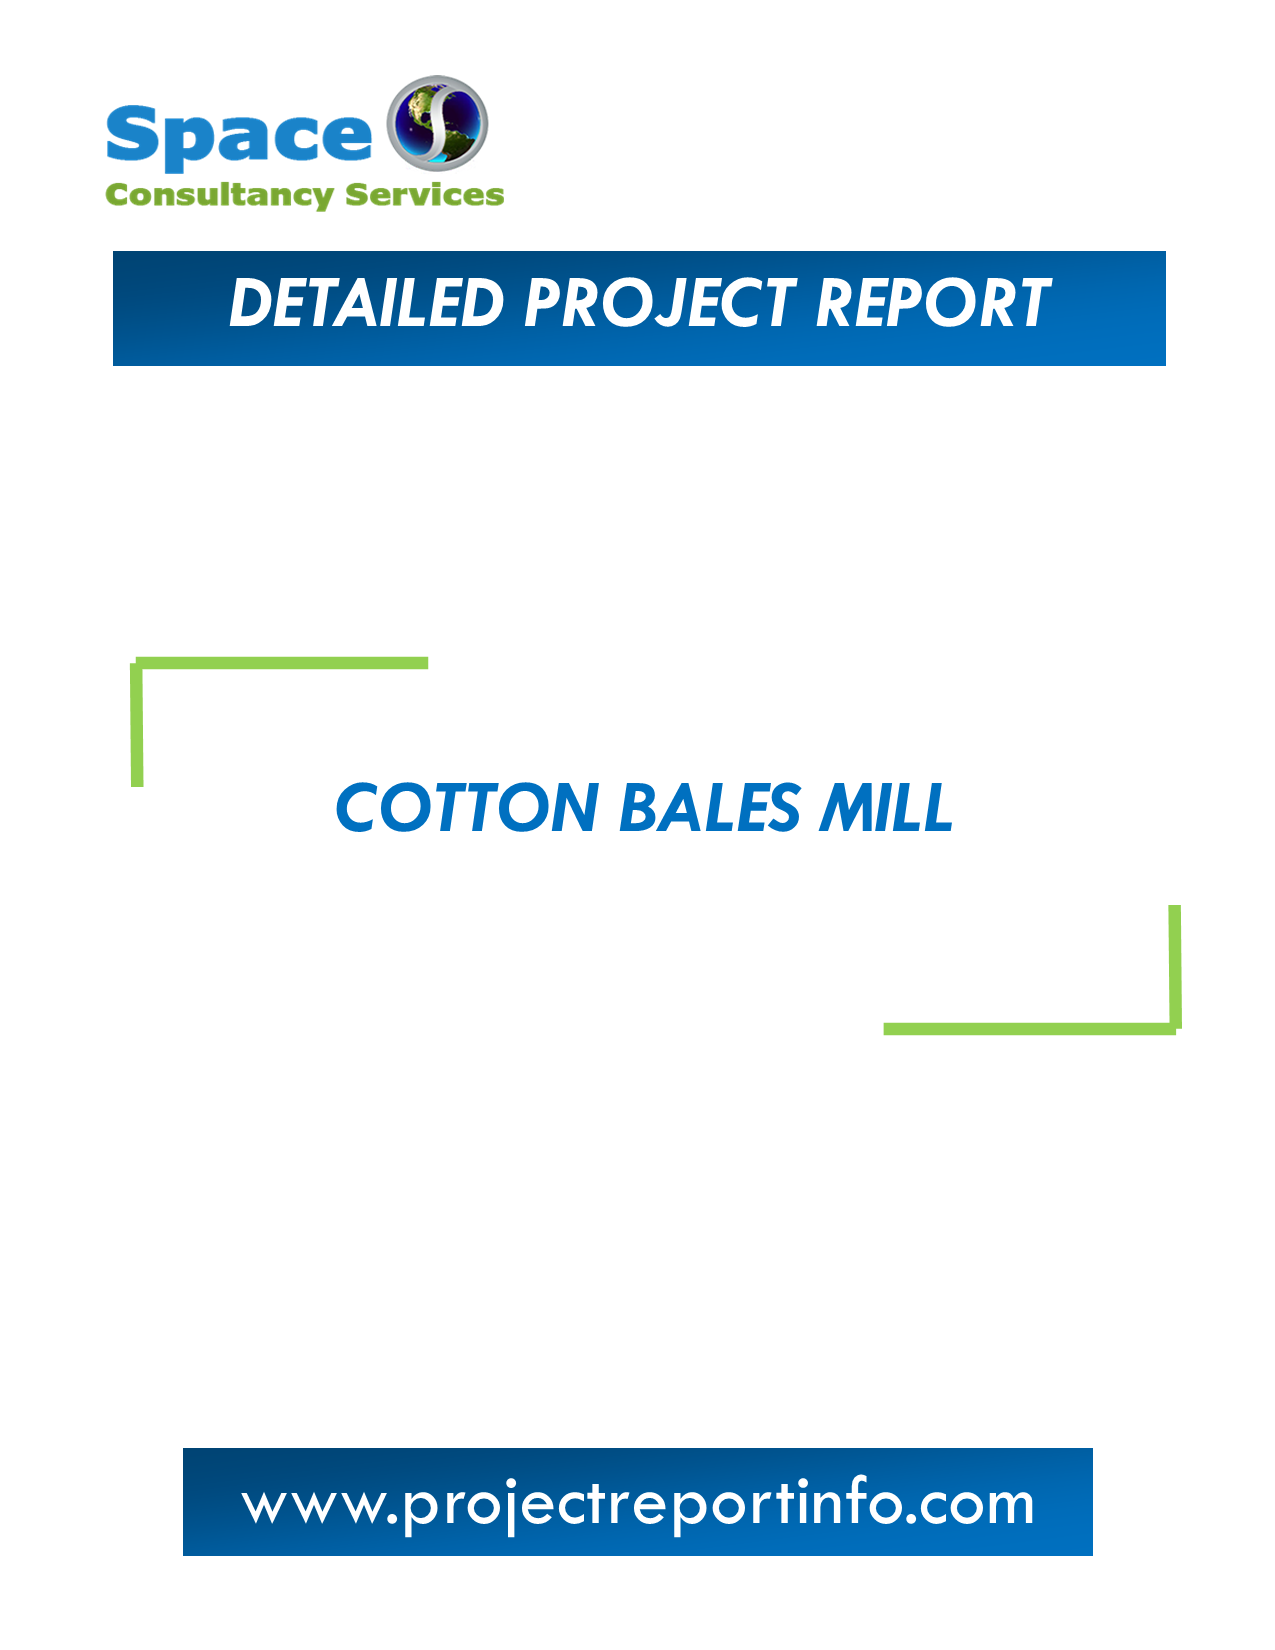 Project Report on Cotton Bales Mill